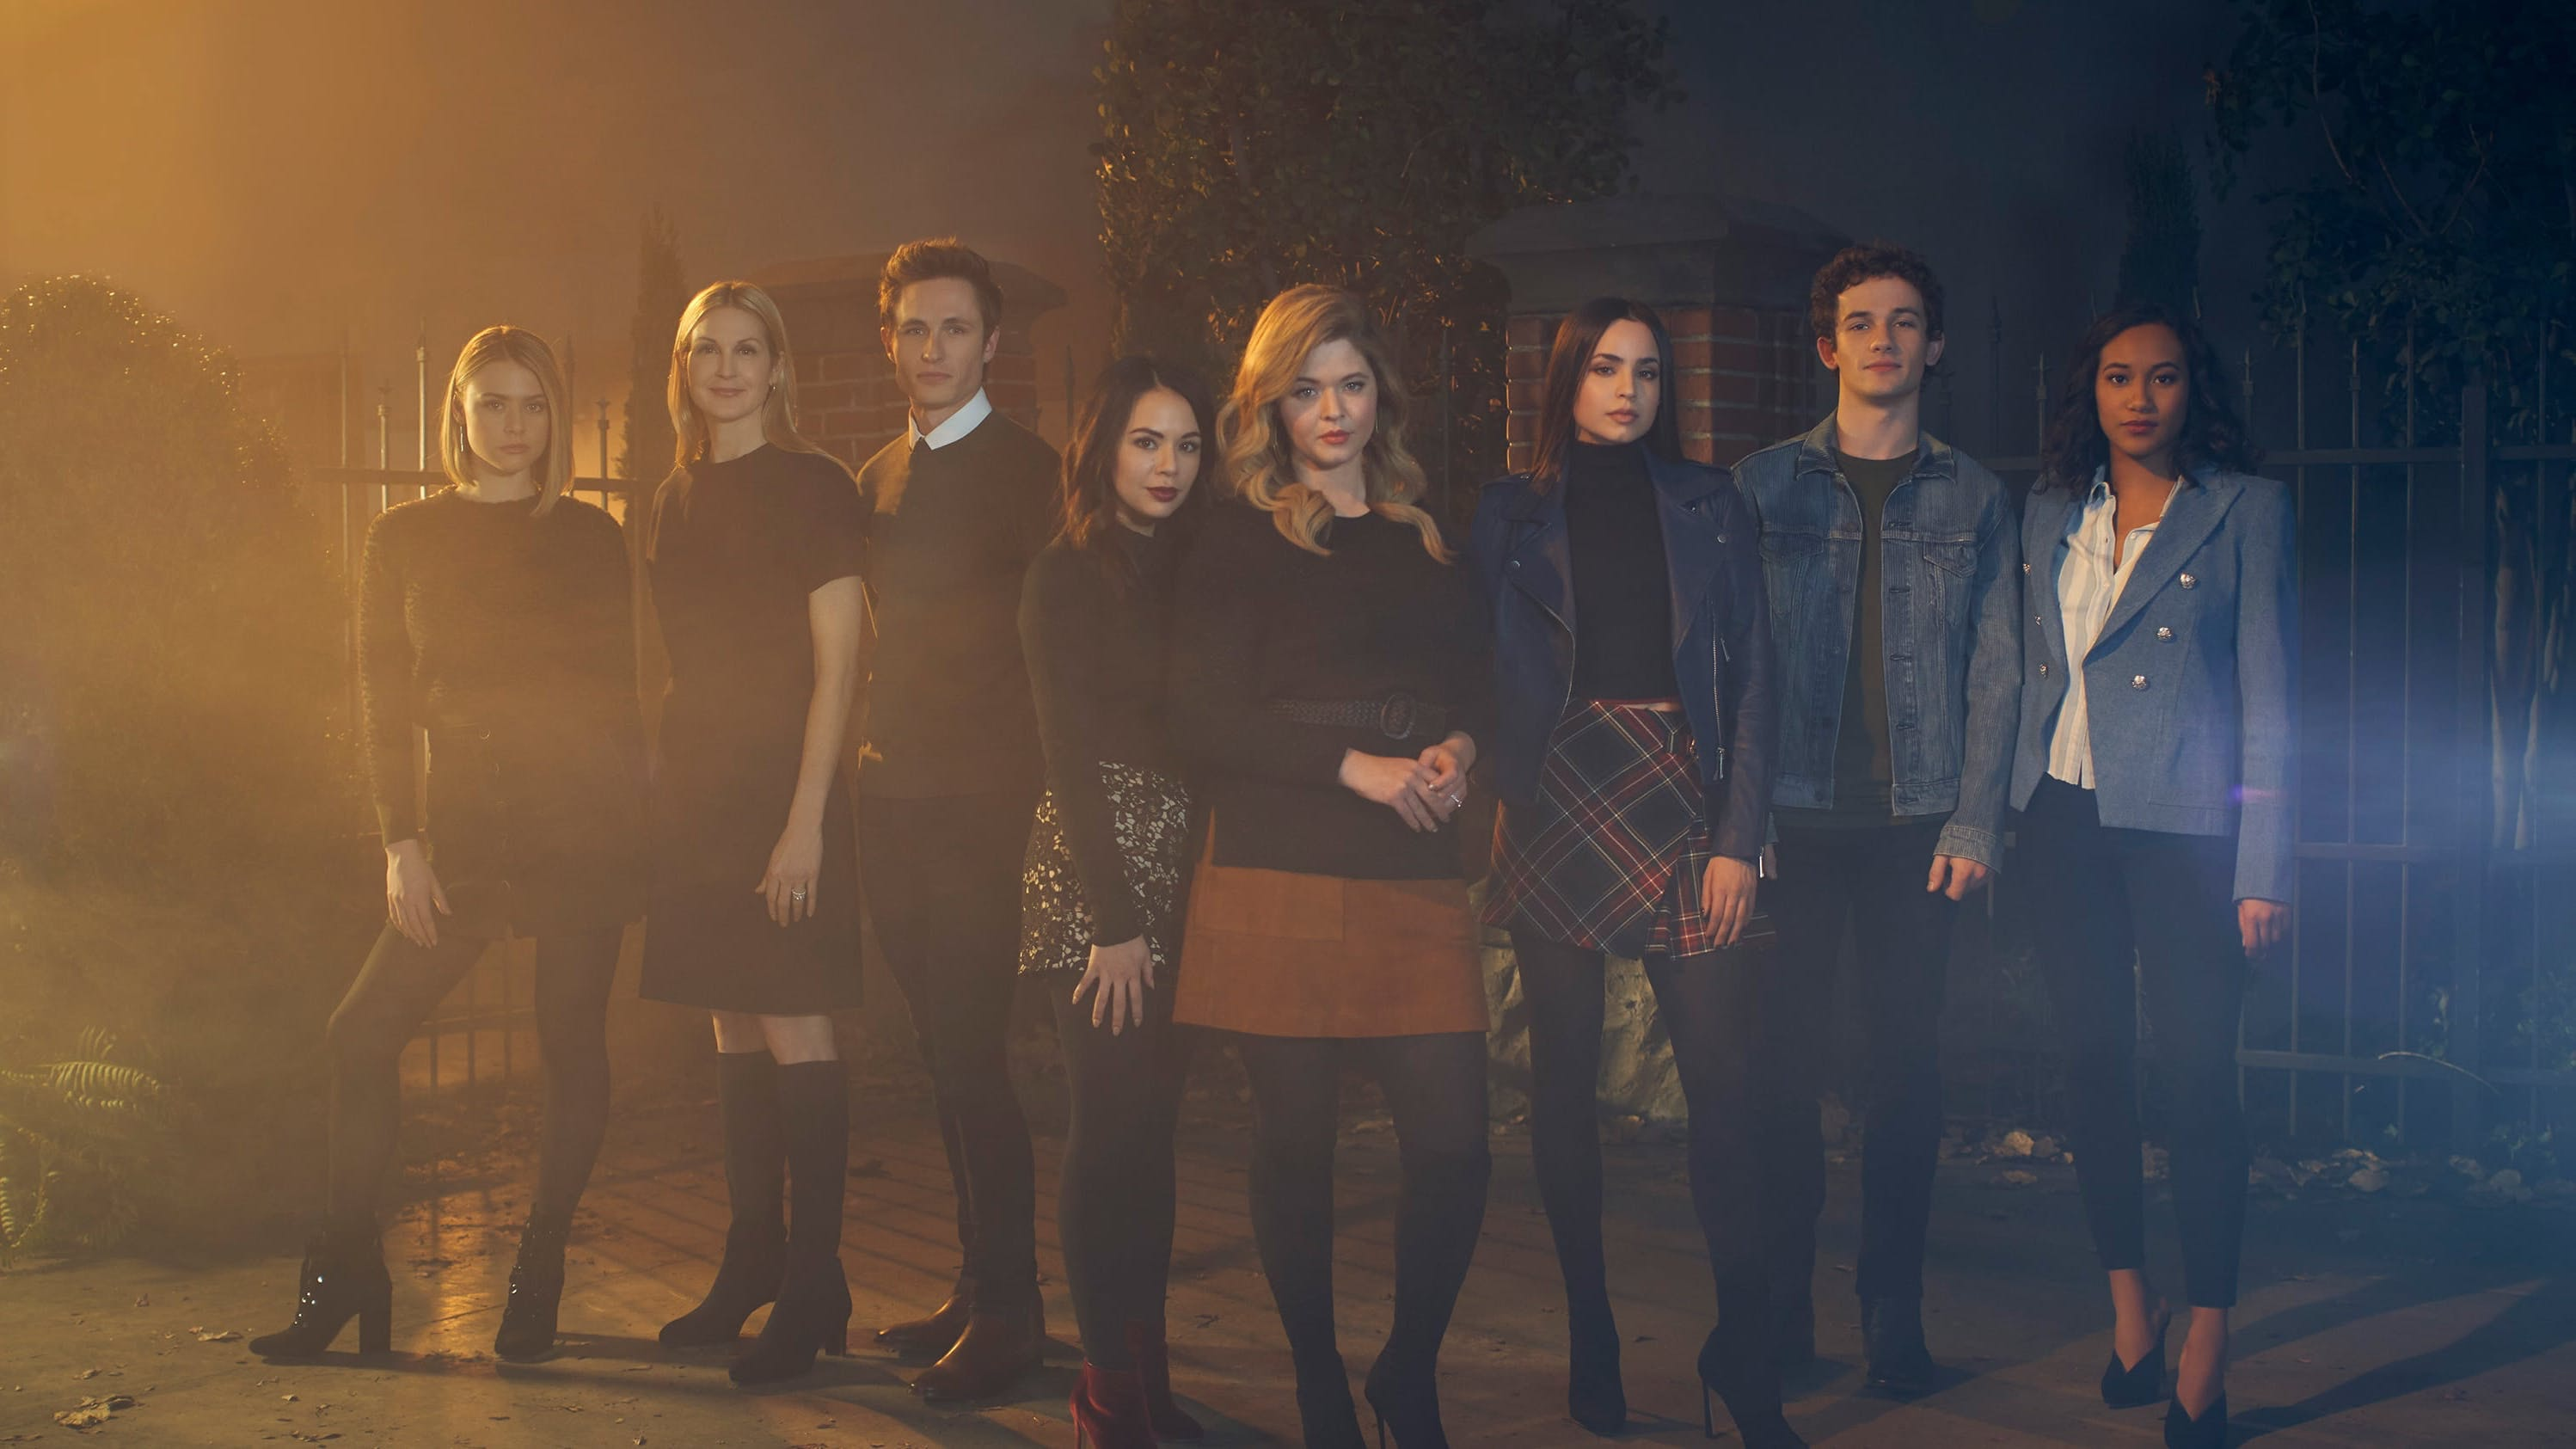 Pretty Little Liars: The Perfectionists Soundtrack